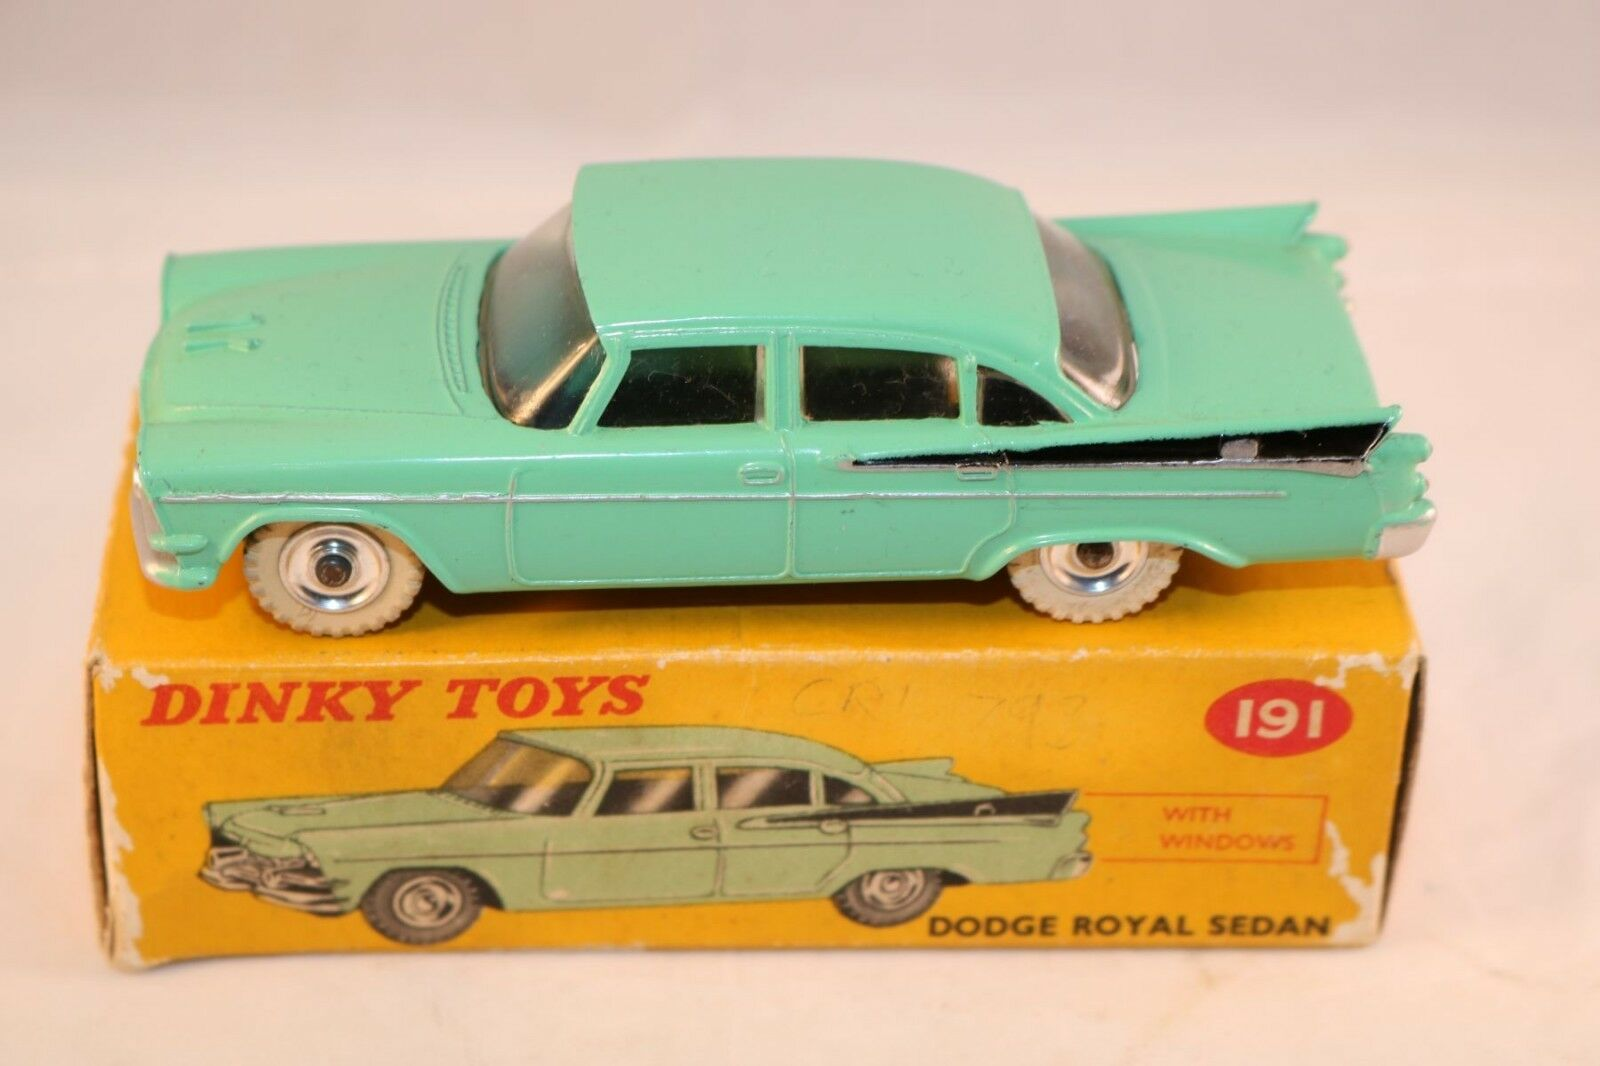 Dinky Toys 191 Dodge Royal Sedan with windows very very near mint in box